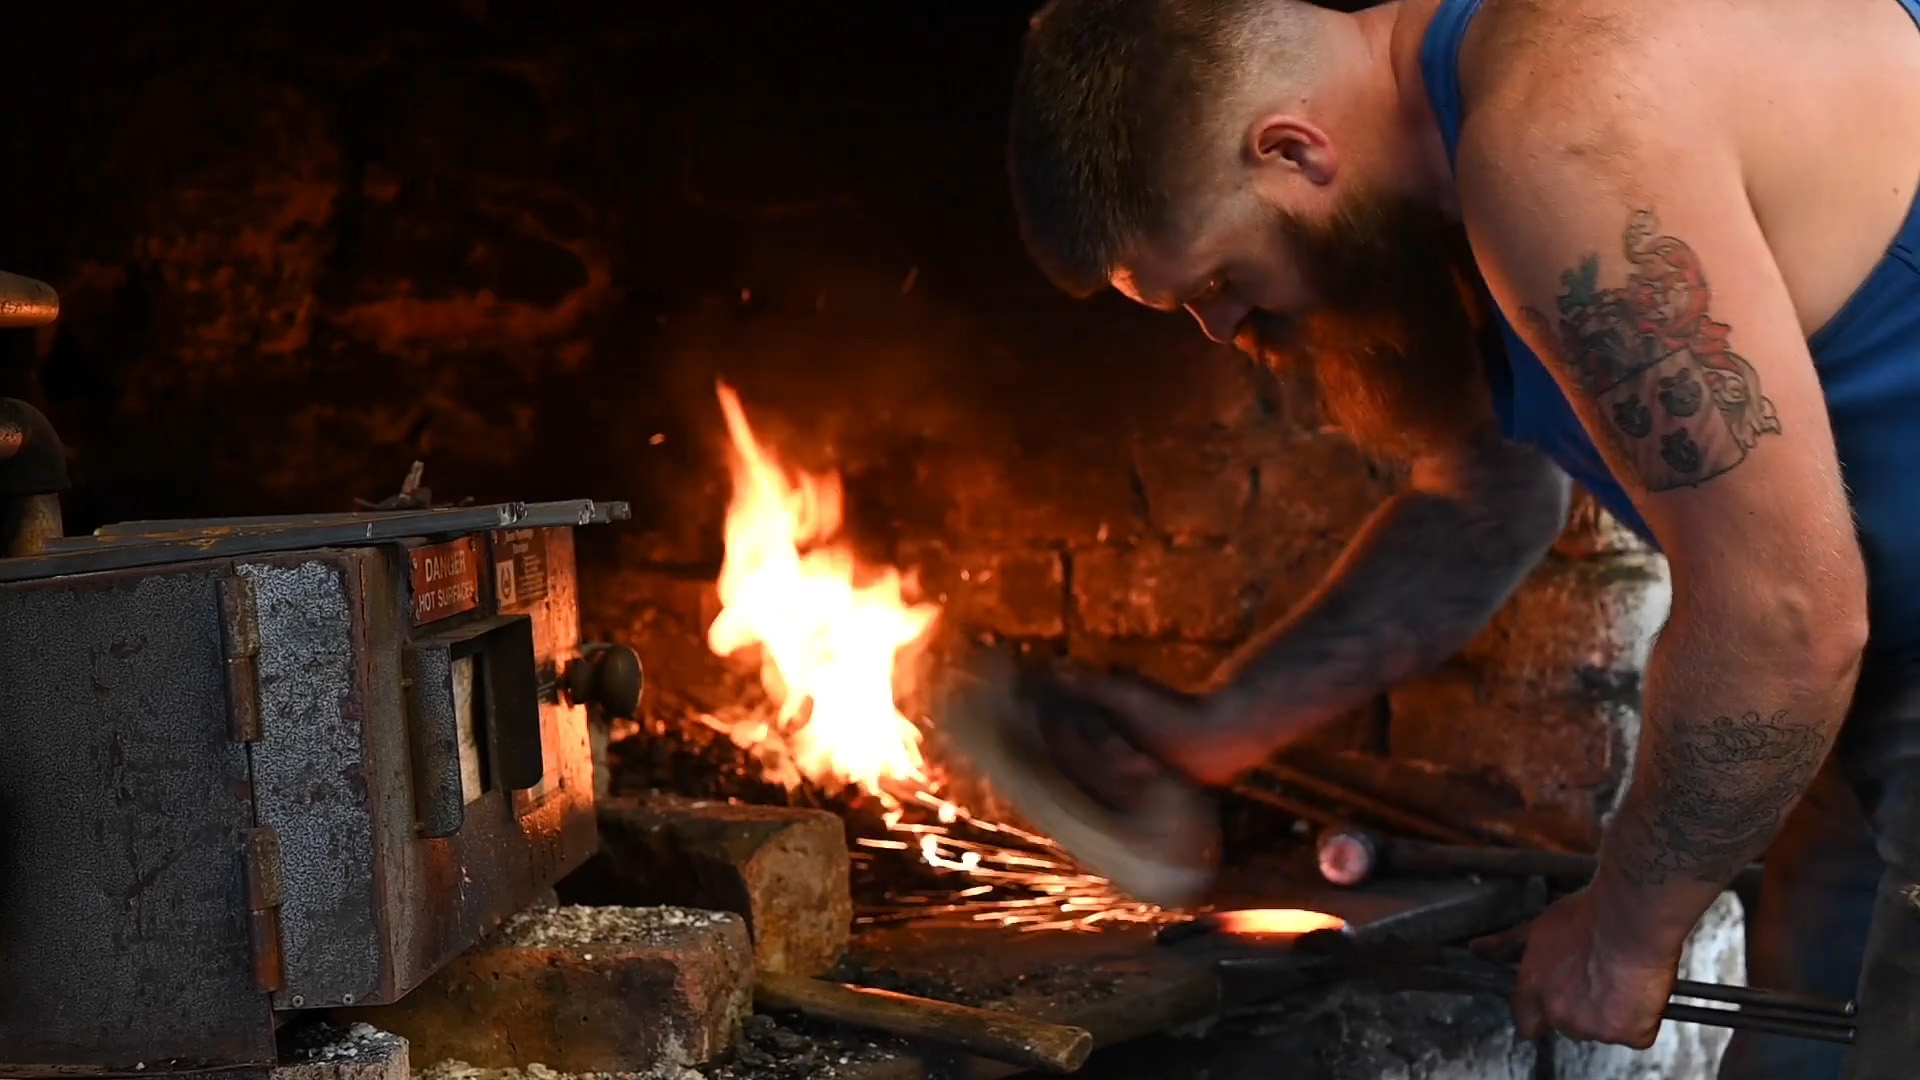 Blacksmith at work in Cousland Smiddy for Consumer PR story by public relations experts Holyrood PR. Image by Eilidh Munro